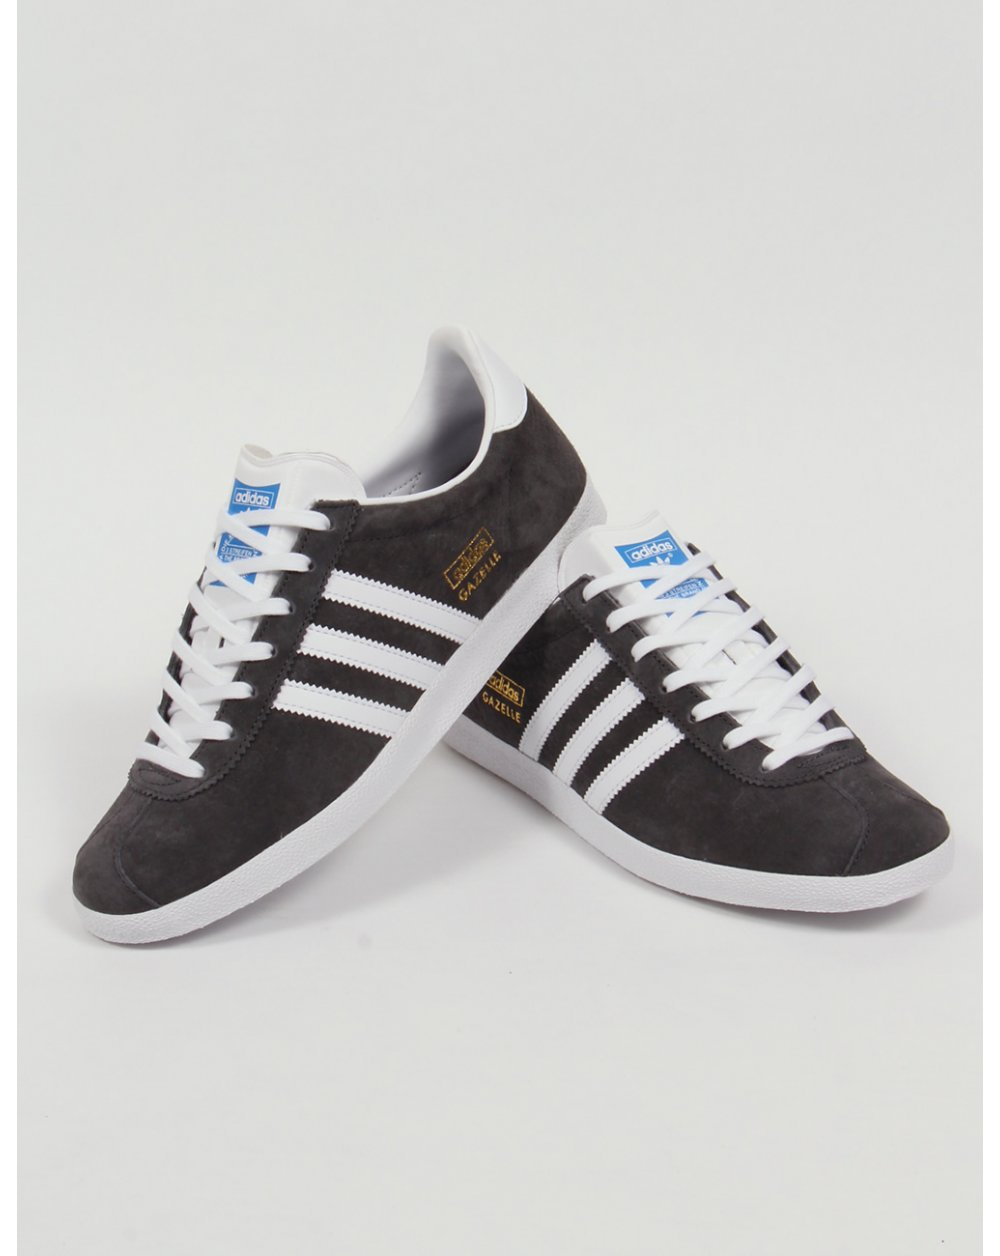 adidas gazelle dark grey